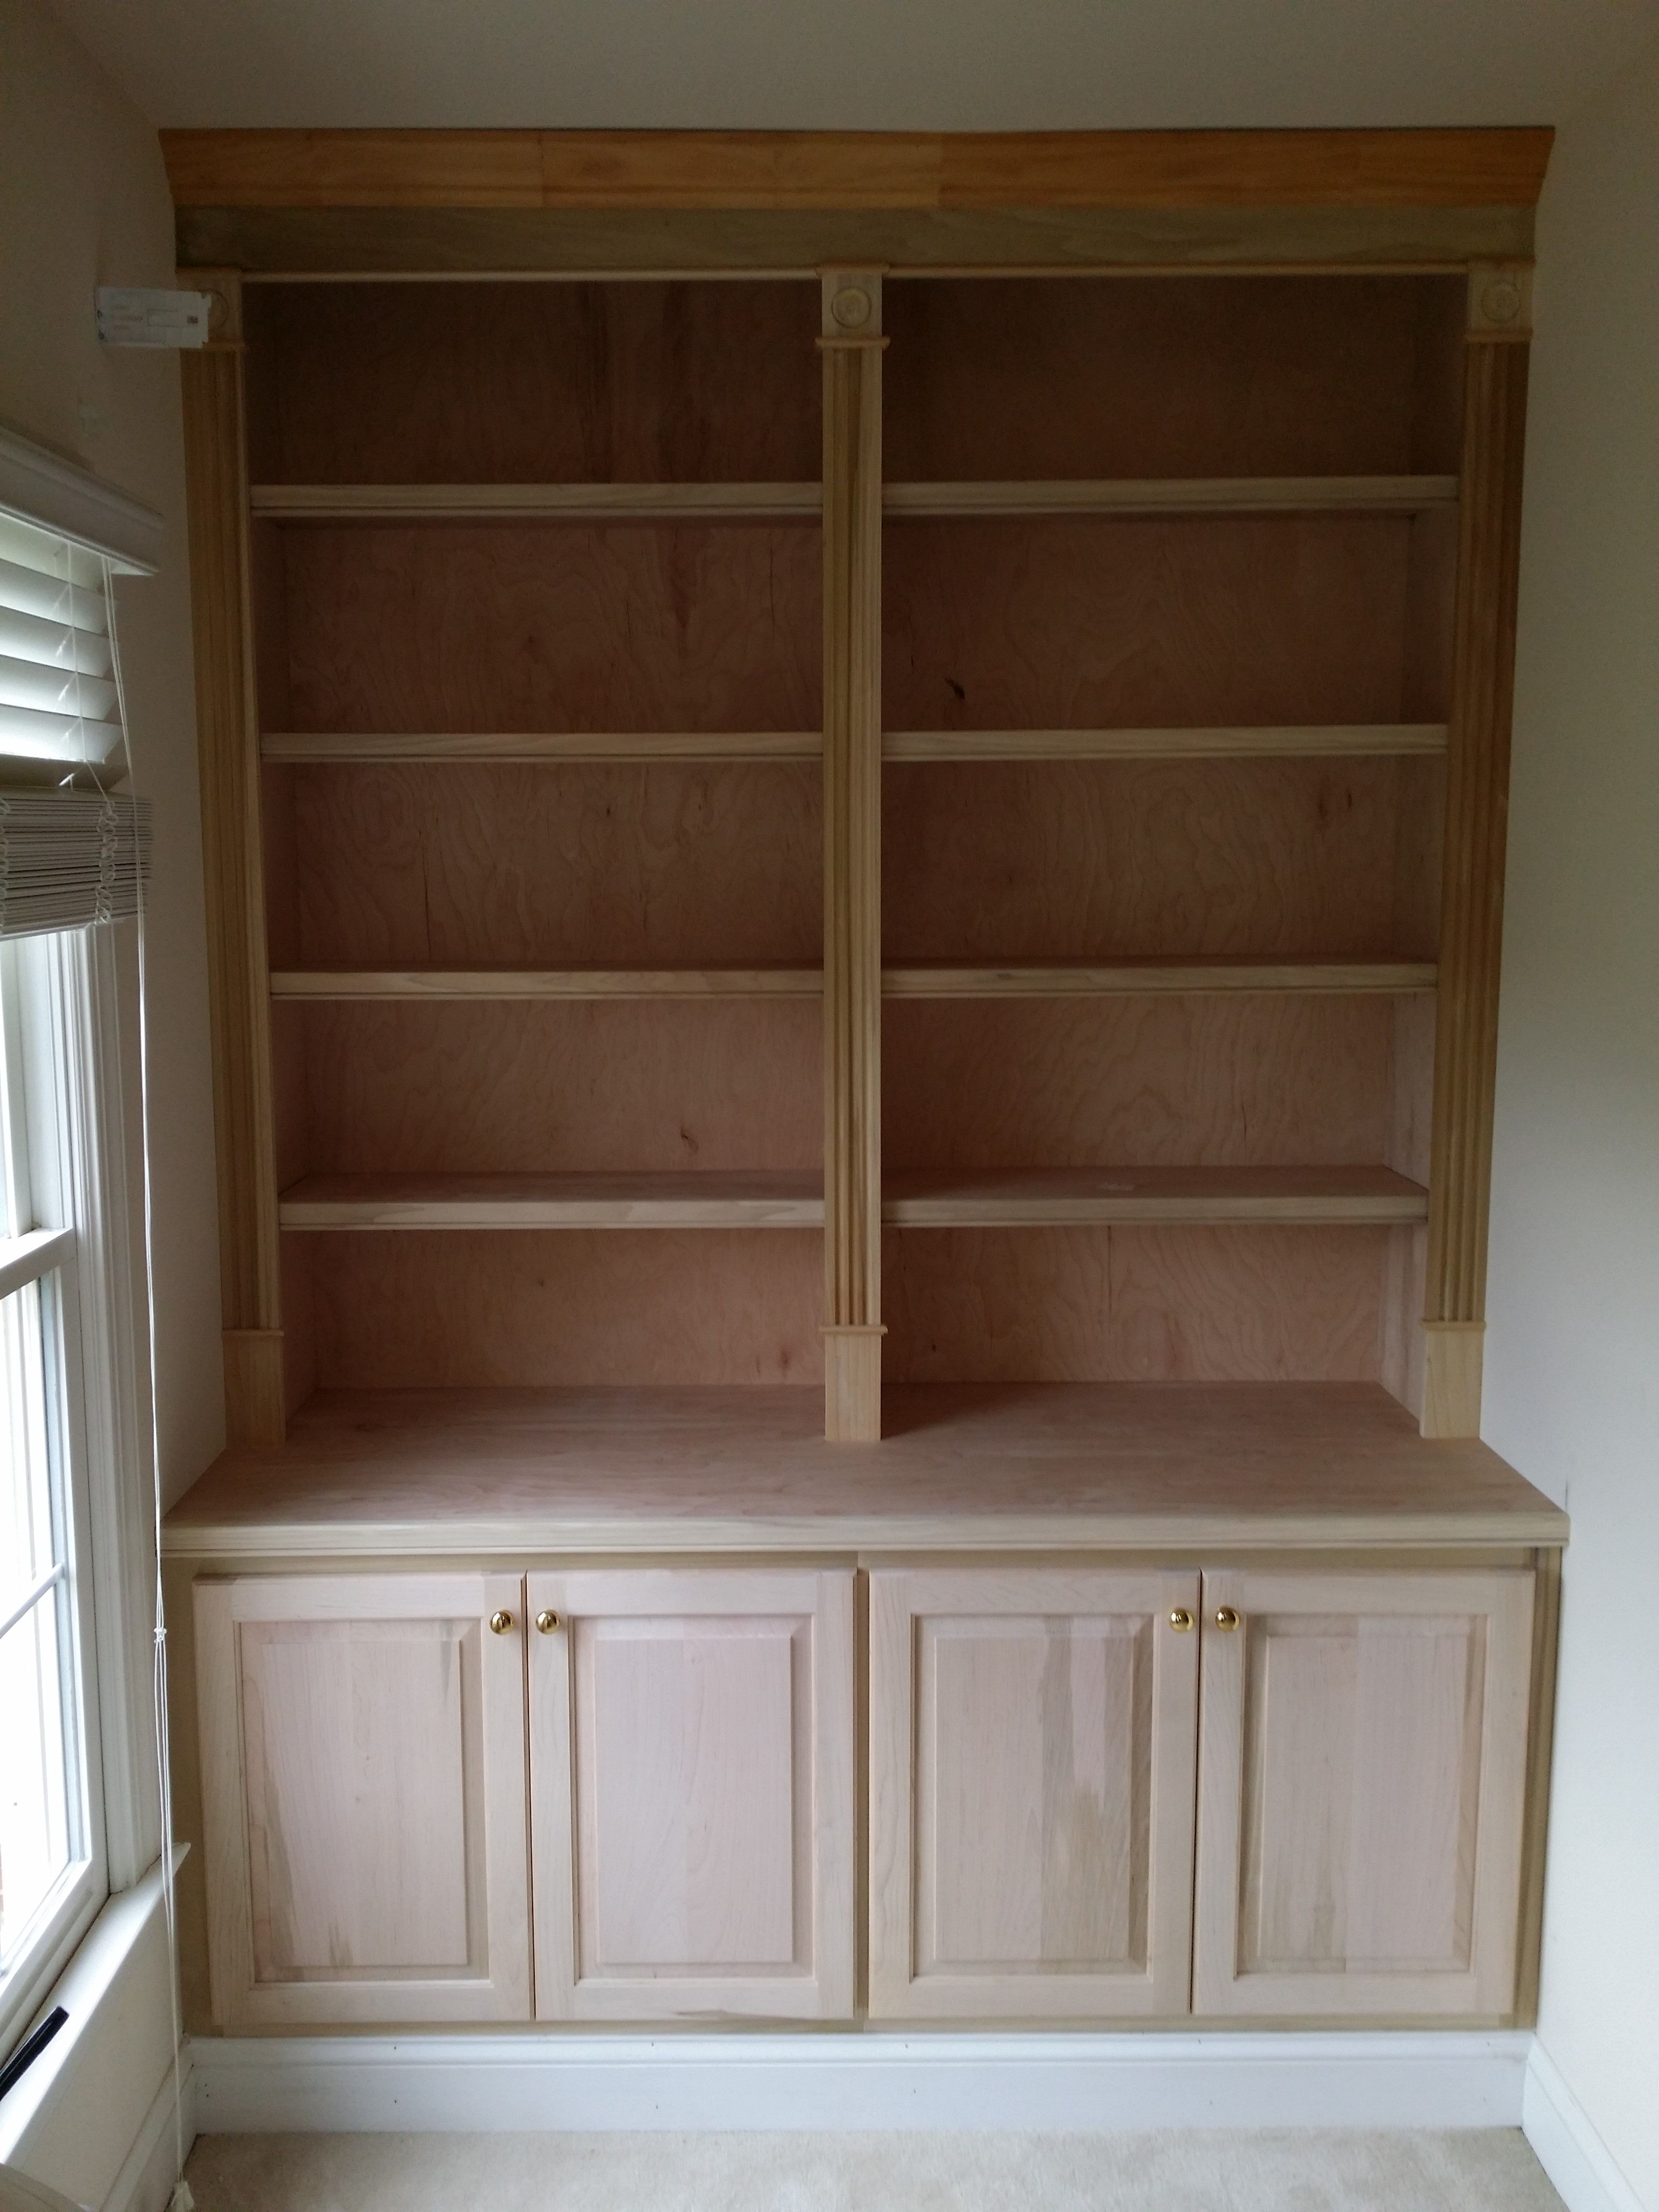 Built In With Fluted Stiles, Closed Storage, Adjustable Shelves Just Installed